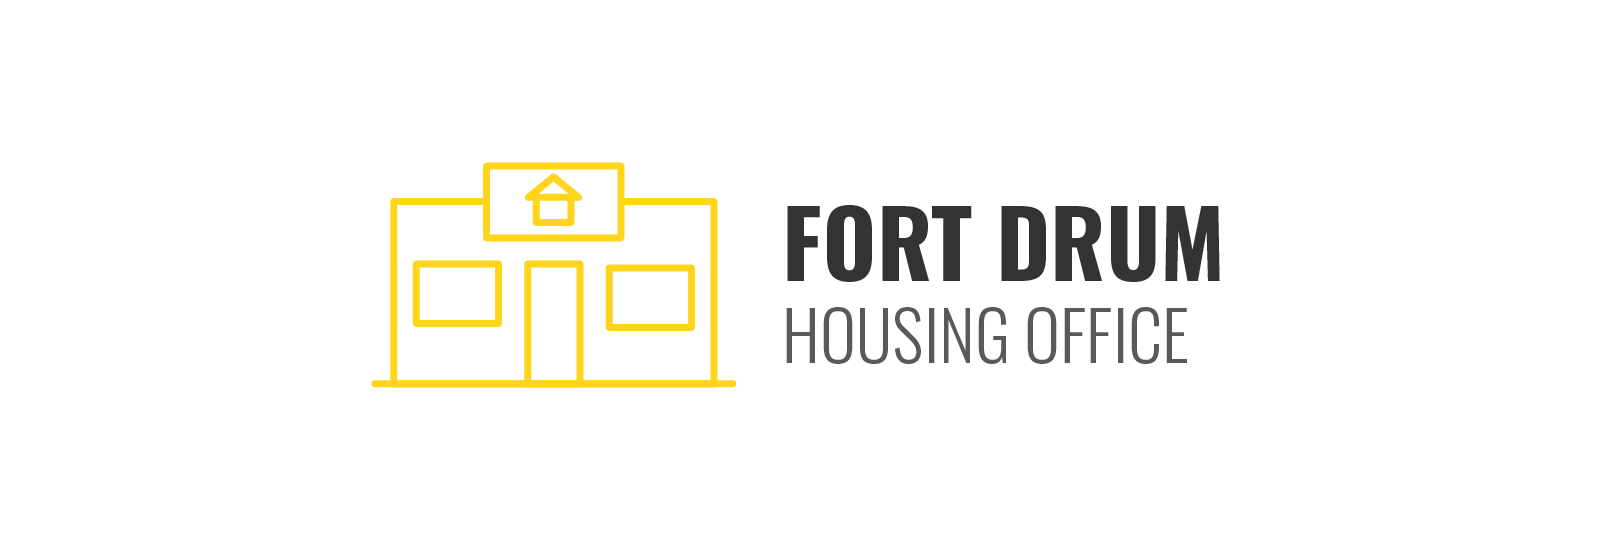 Fort Drum Housing Office